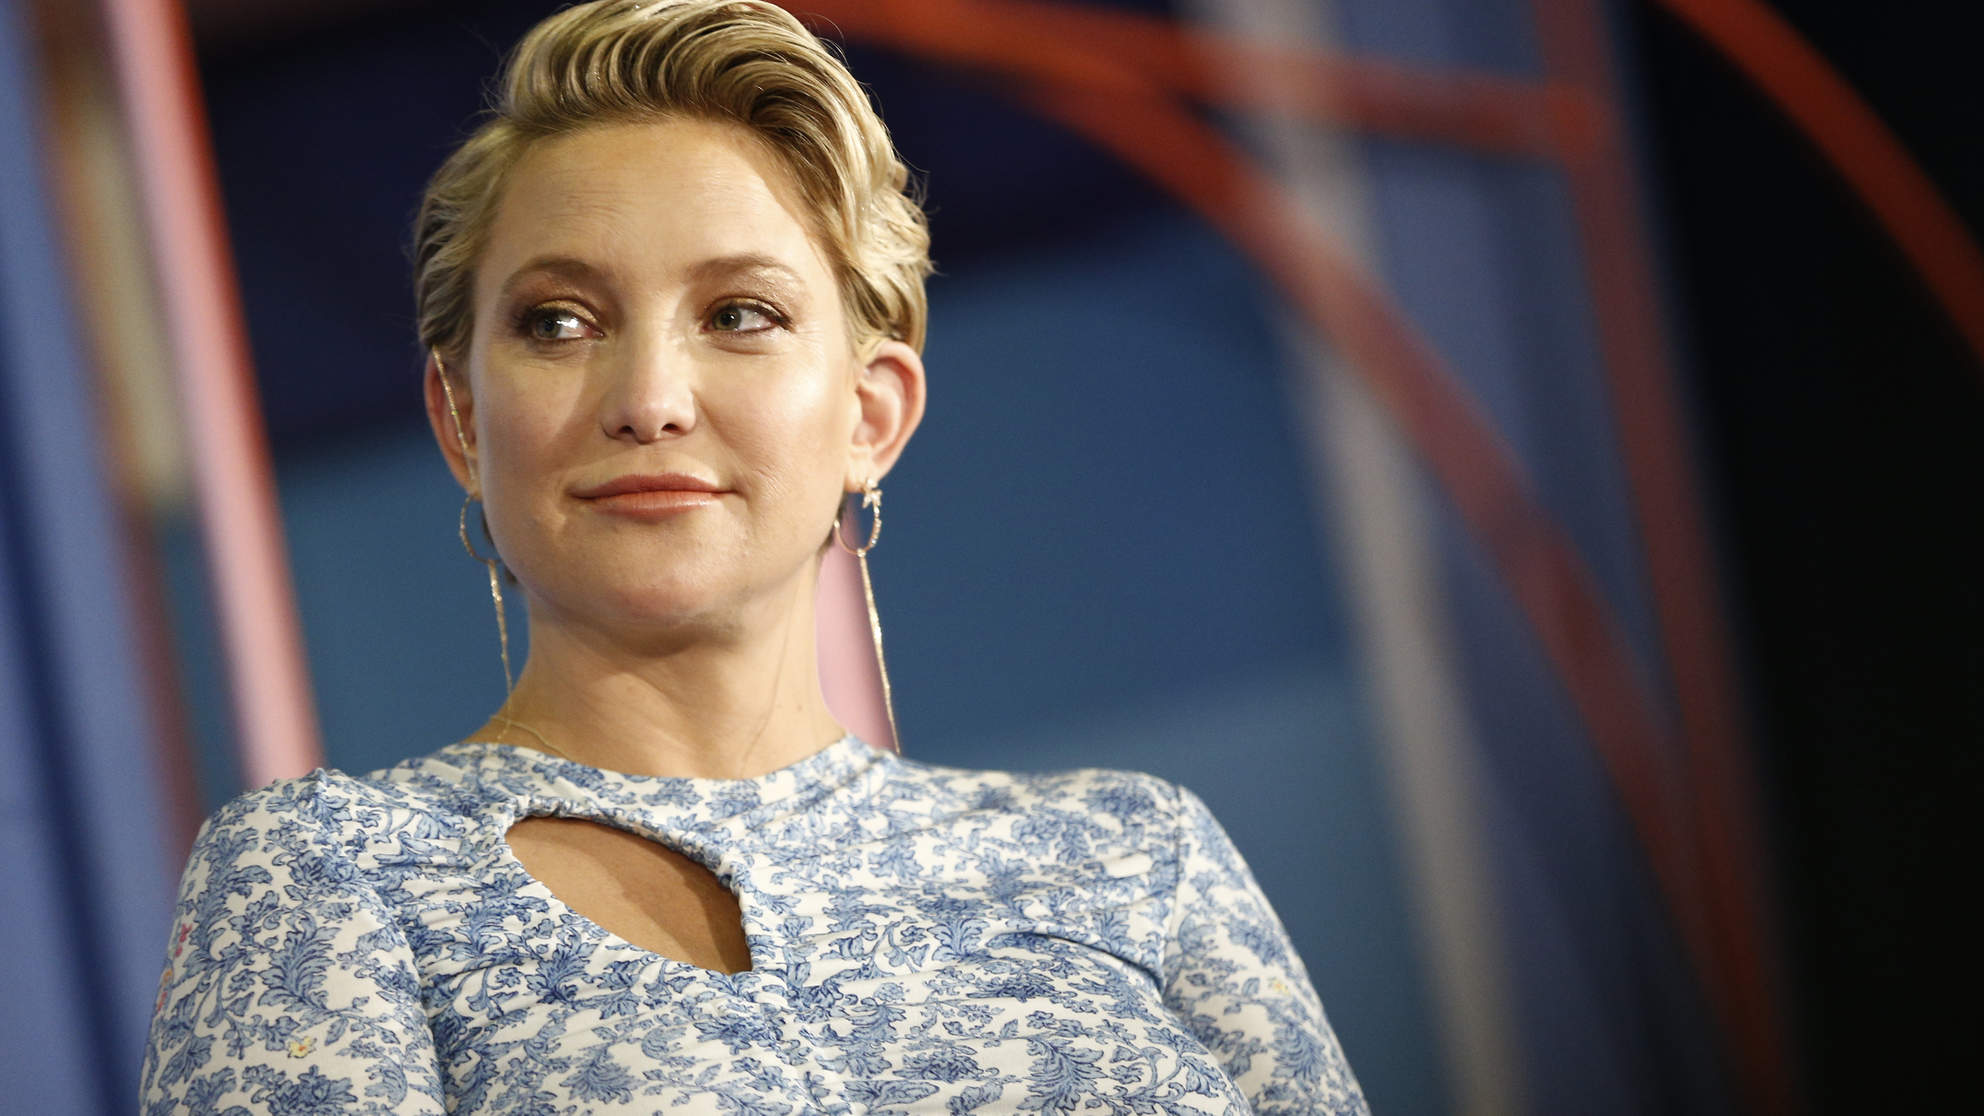 Kate Hudson Gets Real on Why We Need to Destigmatize Depression